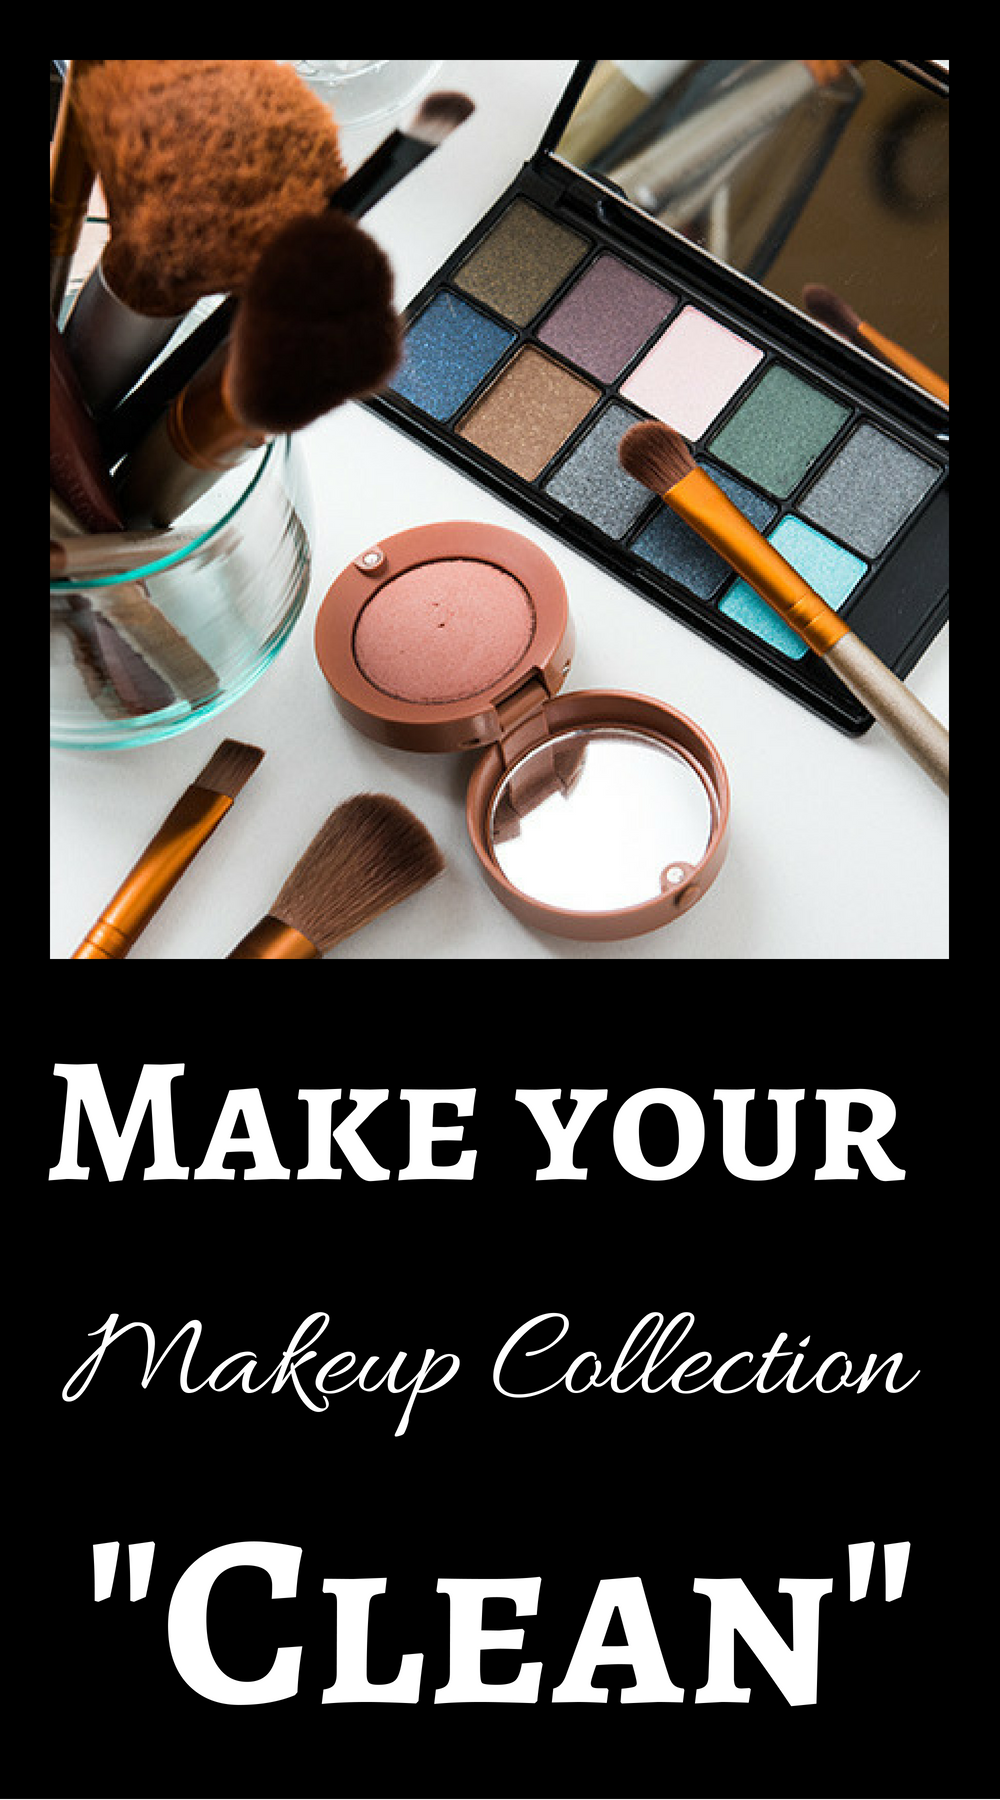 Wellness Wednesday: How To Make Your Makeup Collection Clean